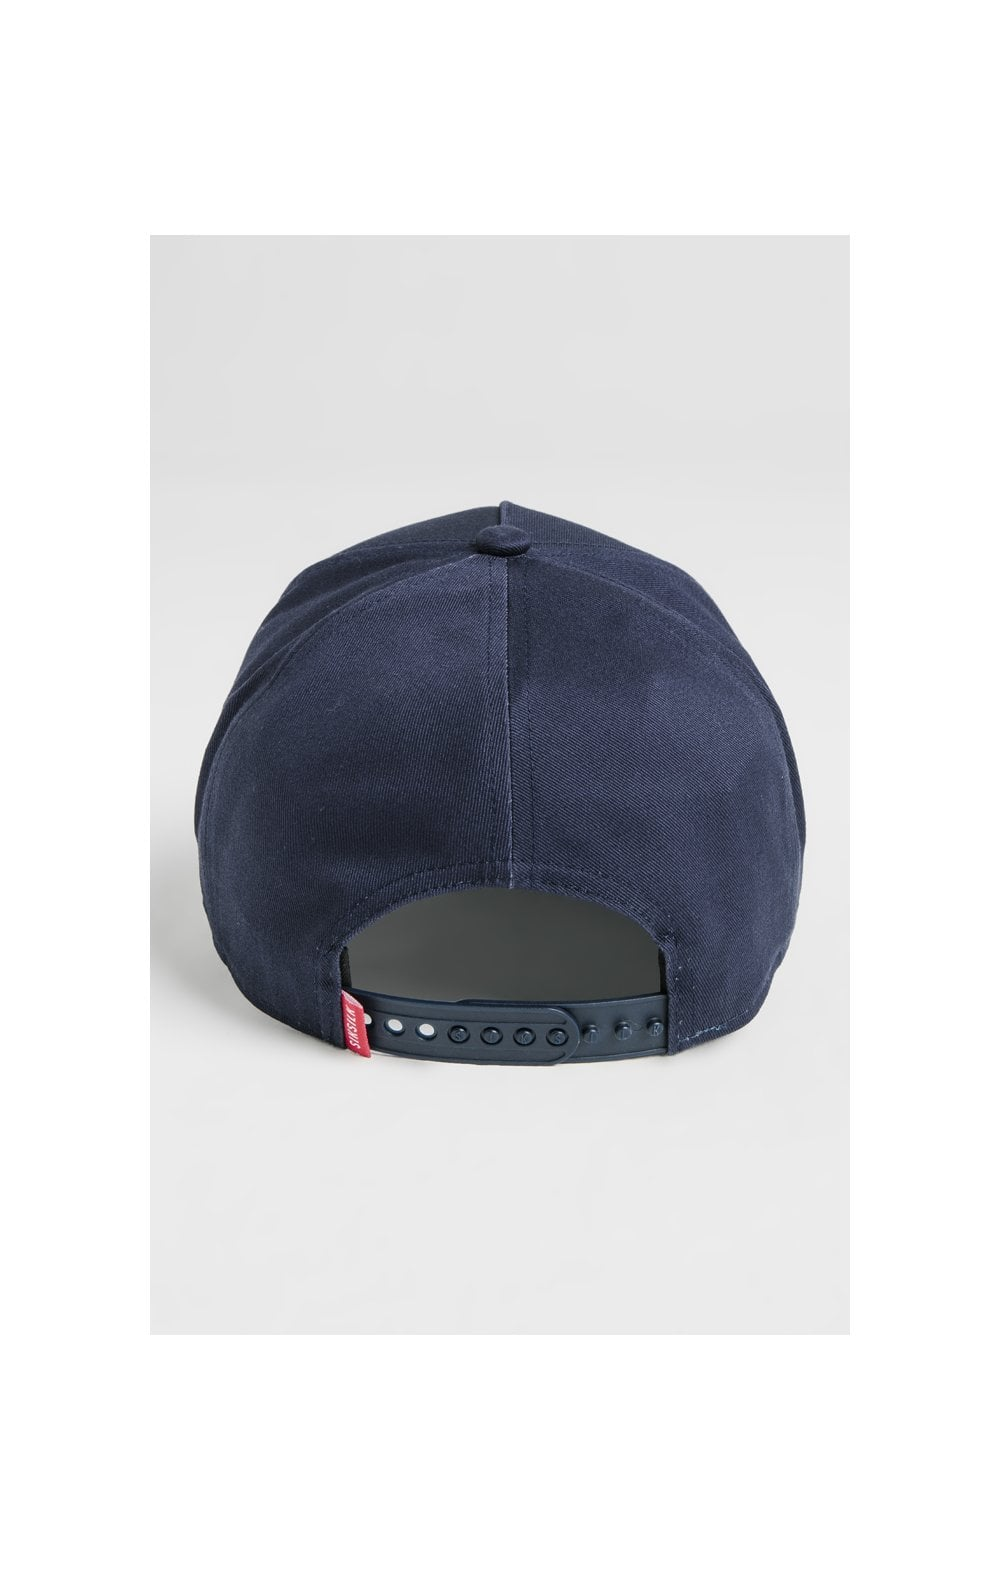 SikSilk Patch Full Trucker - Navy (5)